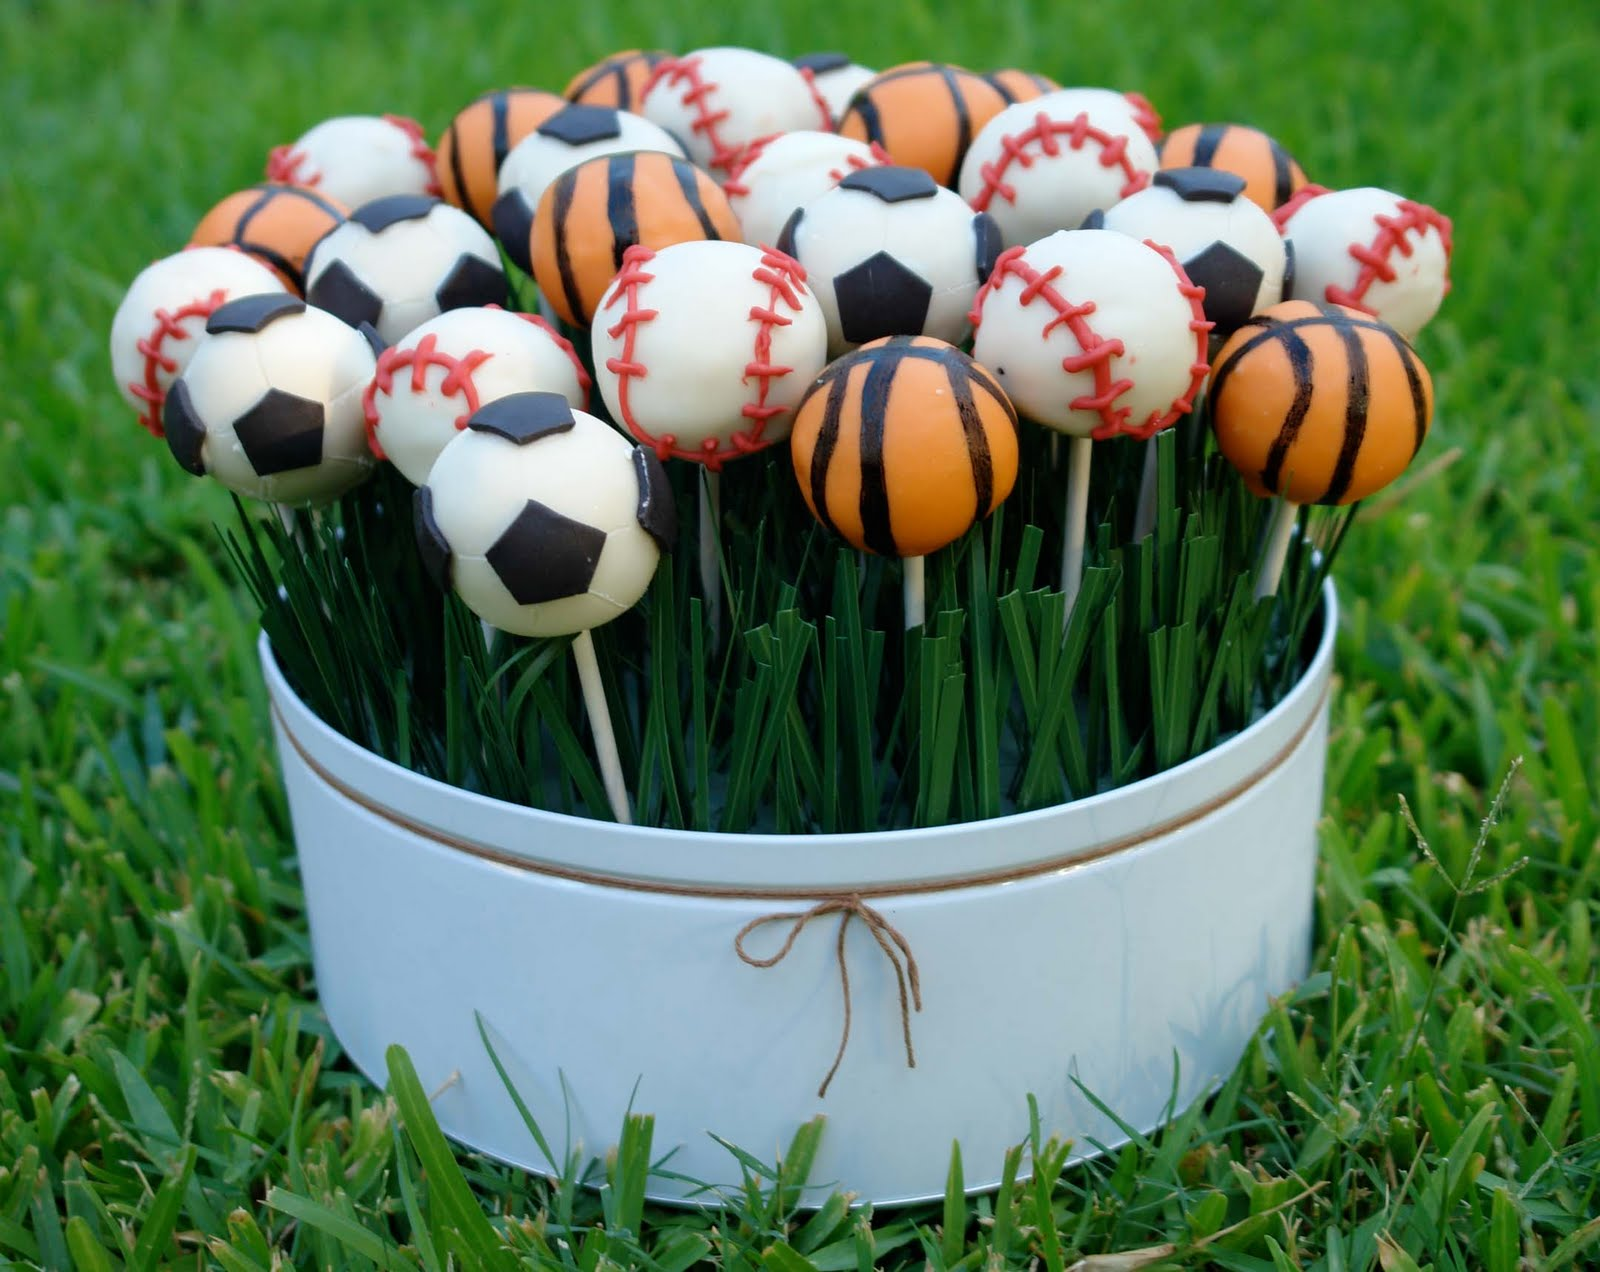 K Bakes Sports Themed Cake Pops